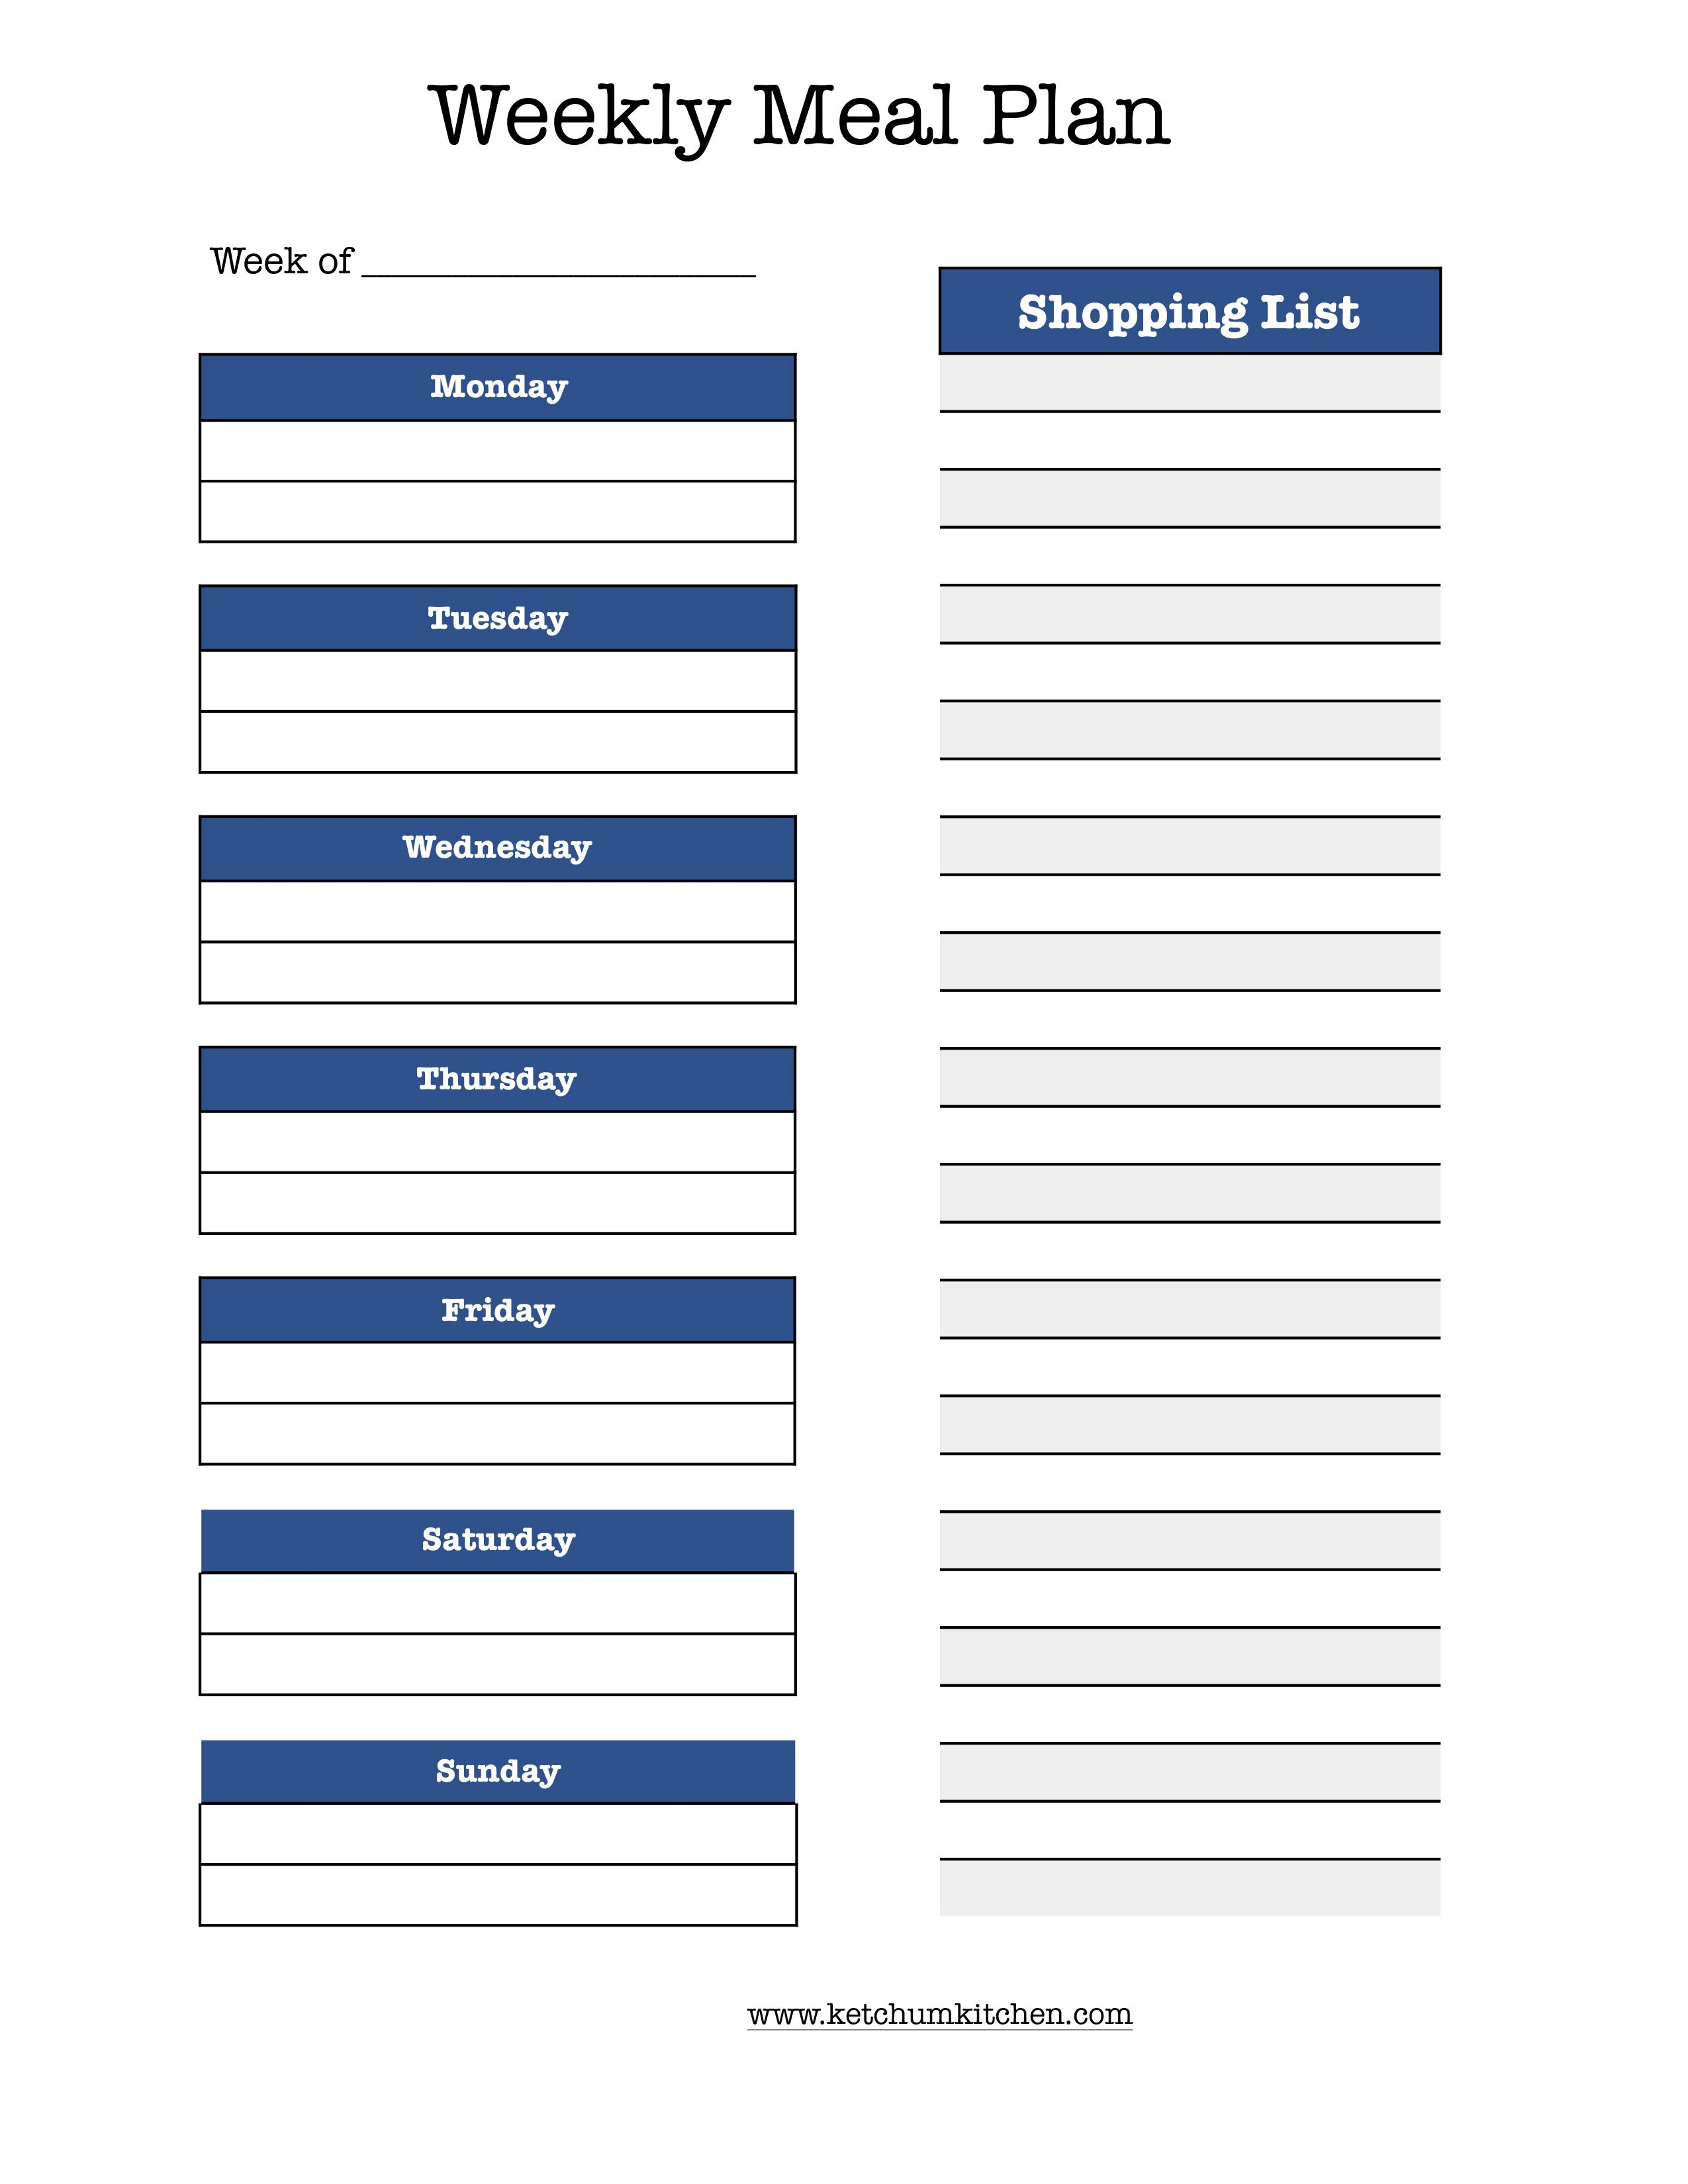 Printable Weekly Meal Plan Including Shopping List Meal